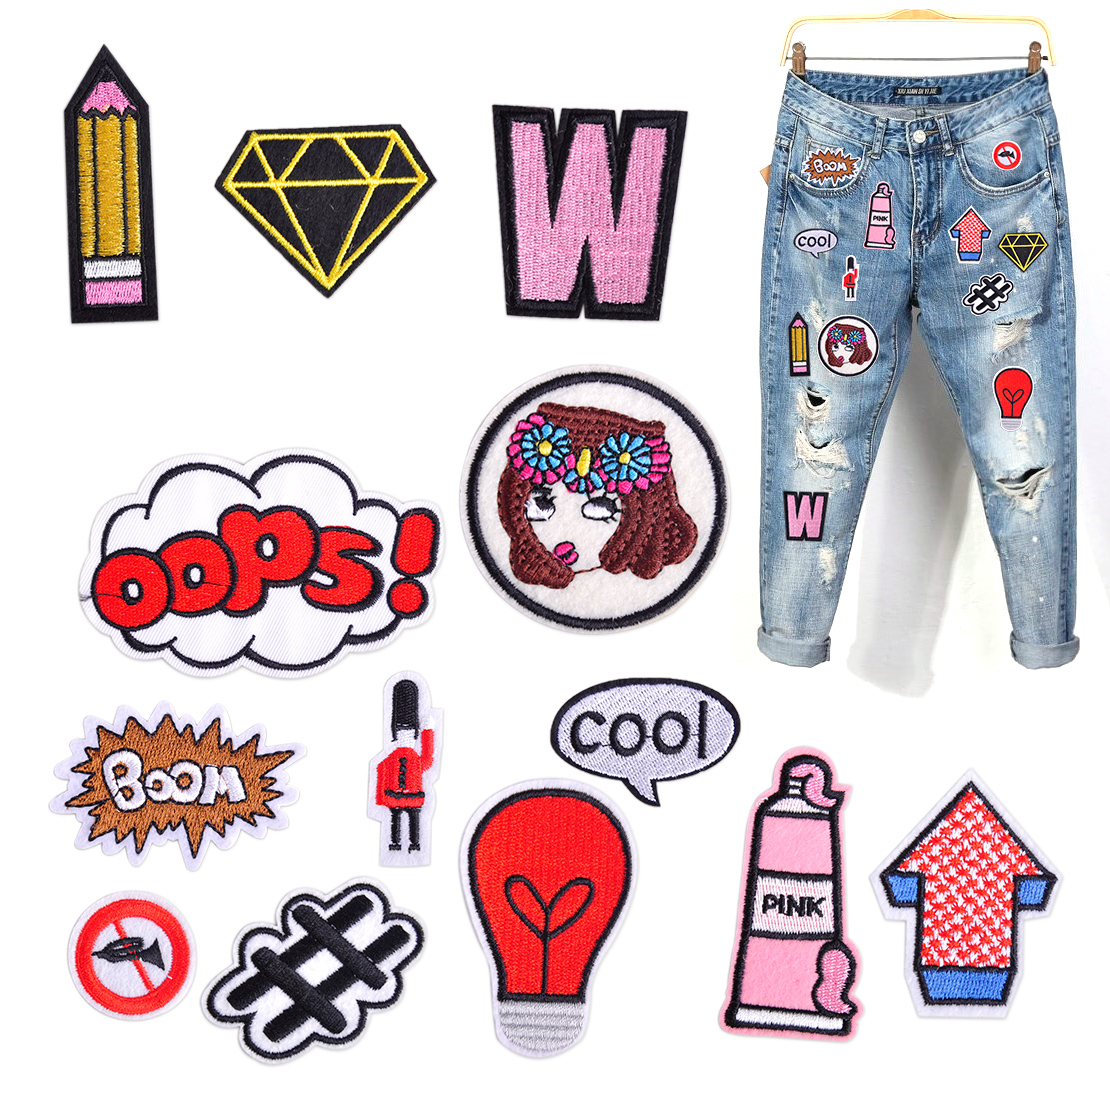 13x Boom Oops Letter Embroidery Patch Set Applique Badge Sew Iron On Clothing